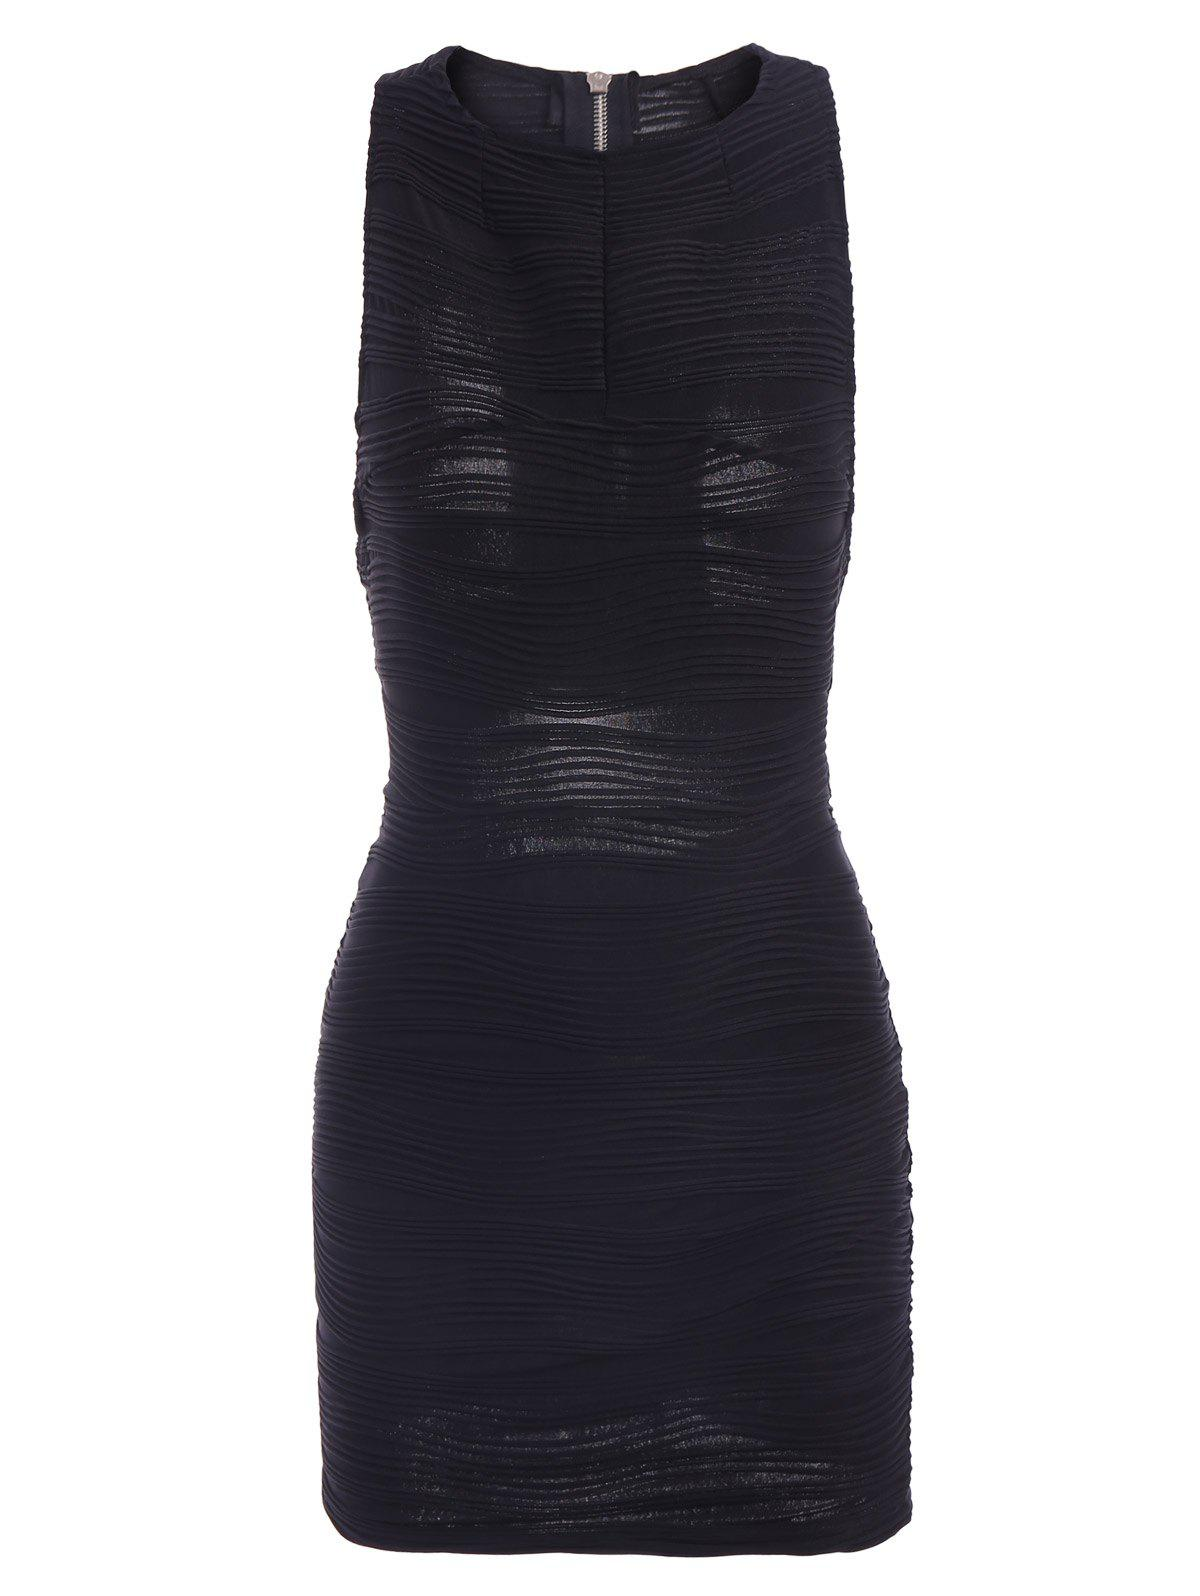 Sexy Round Collar Solid Color Backless Cut Out Skinny Sleeveless Womens DressWomen<br><br><br>Size: ONE SIZE(FIT SIZE XS TO M)<br>Color: BLACK